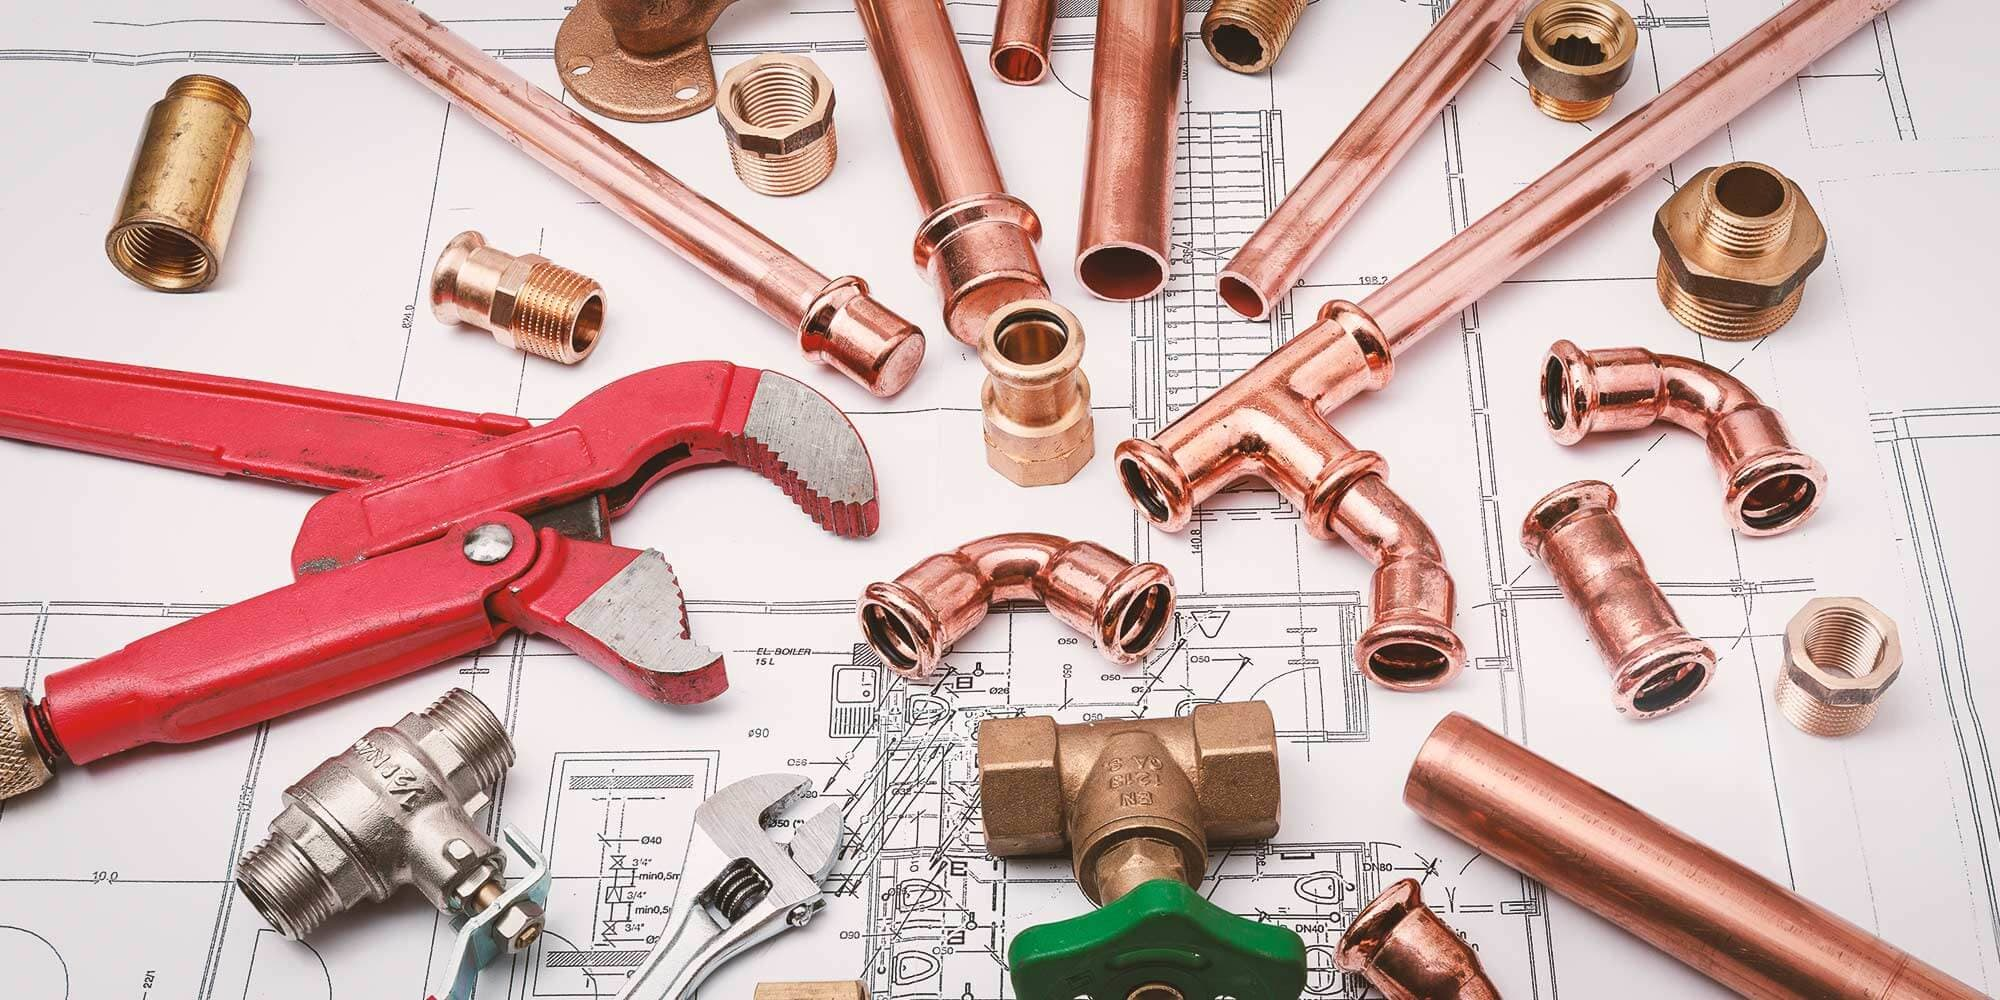 Property Owners Rely Solely on Experts to Resolve Plumbing Issues